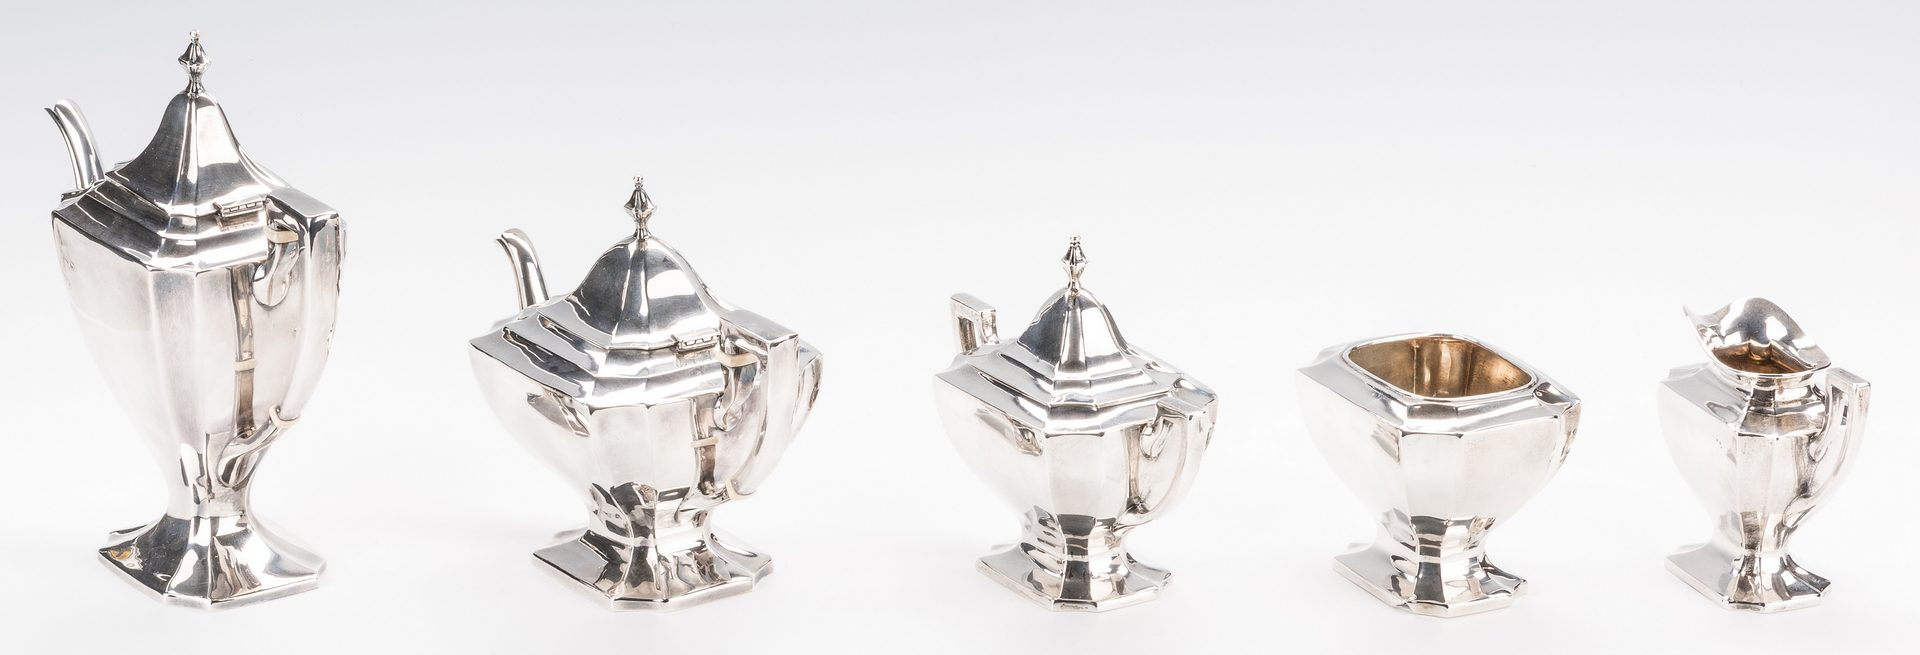 Lot 406: 5 Piece Saart Bros./SSMC Sterling Tea Set